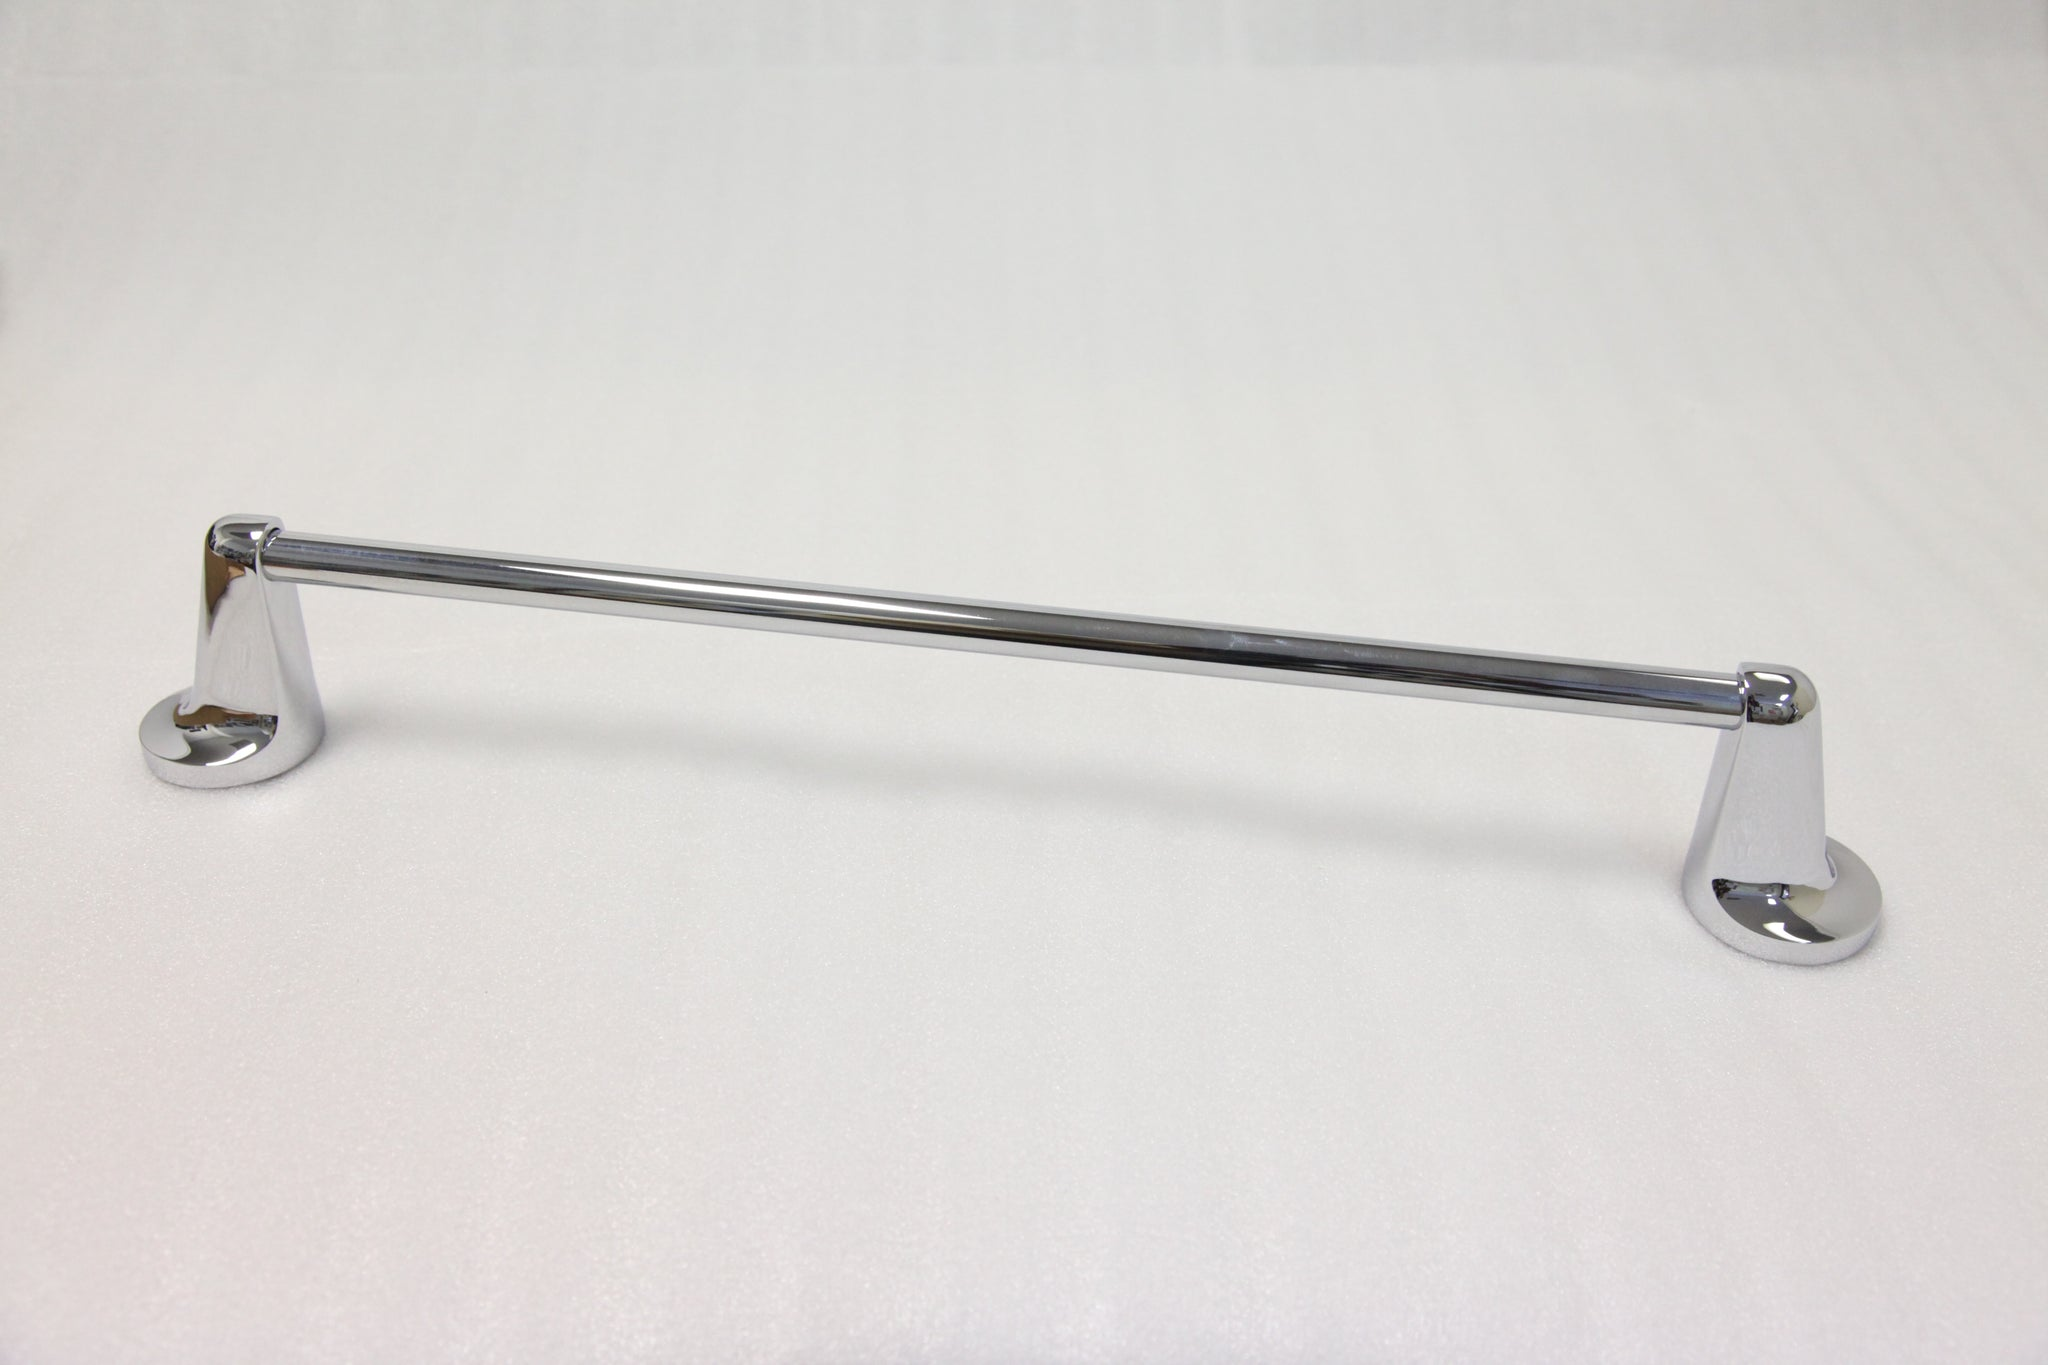 Single towel Bar 750 mm